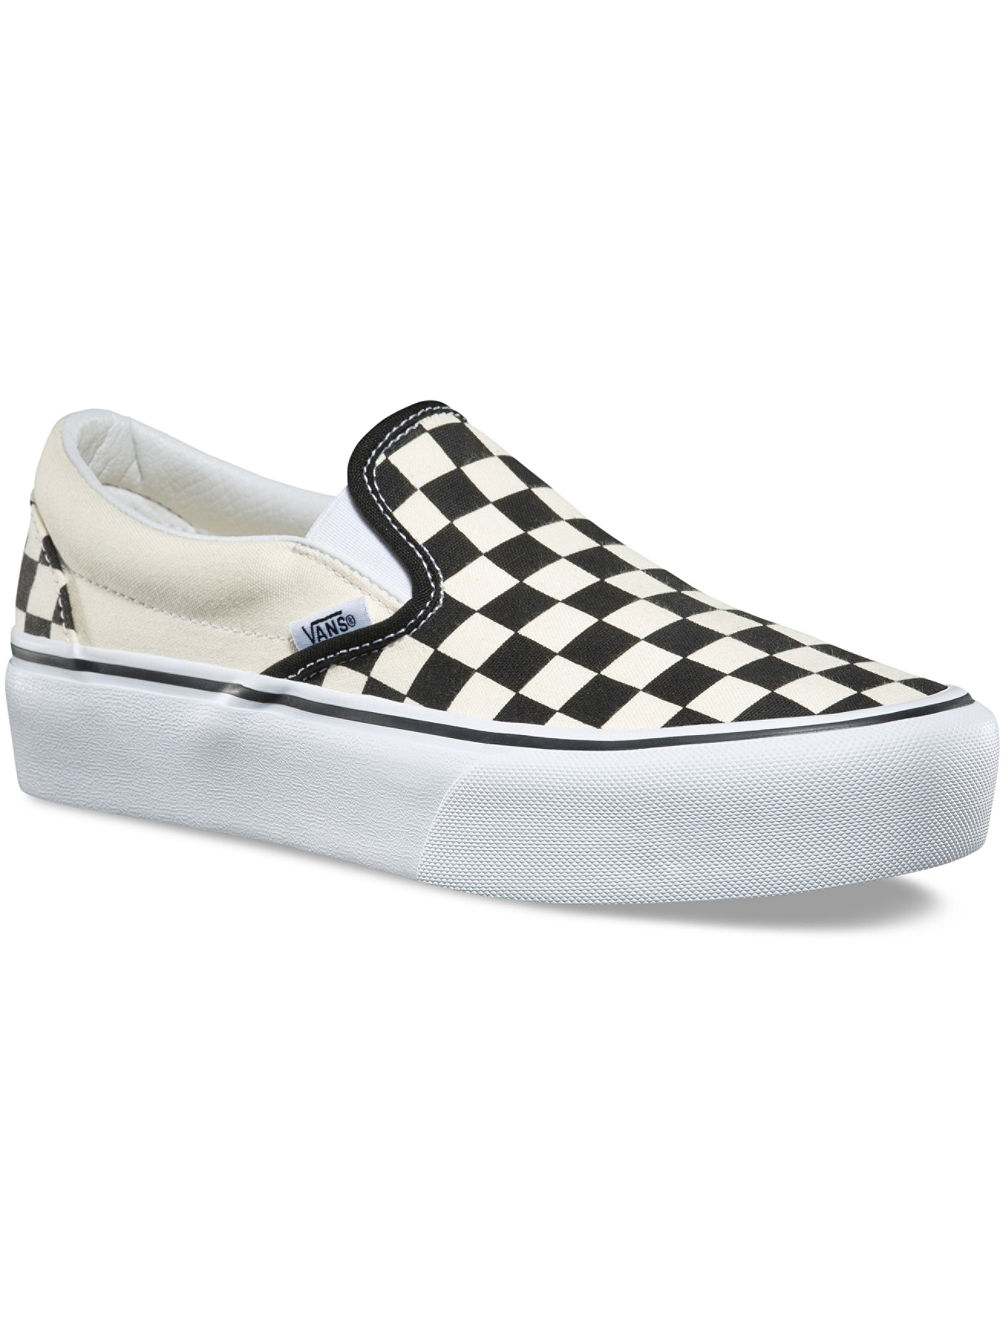 Checkerboard Classic Platform Slippers